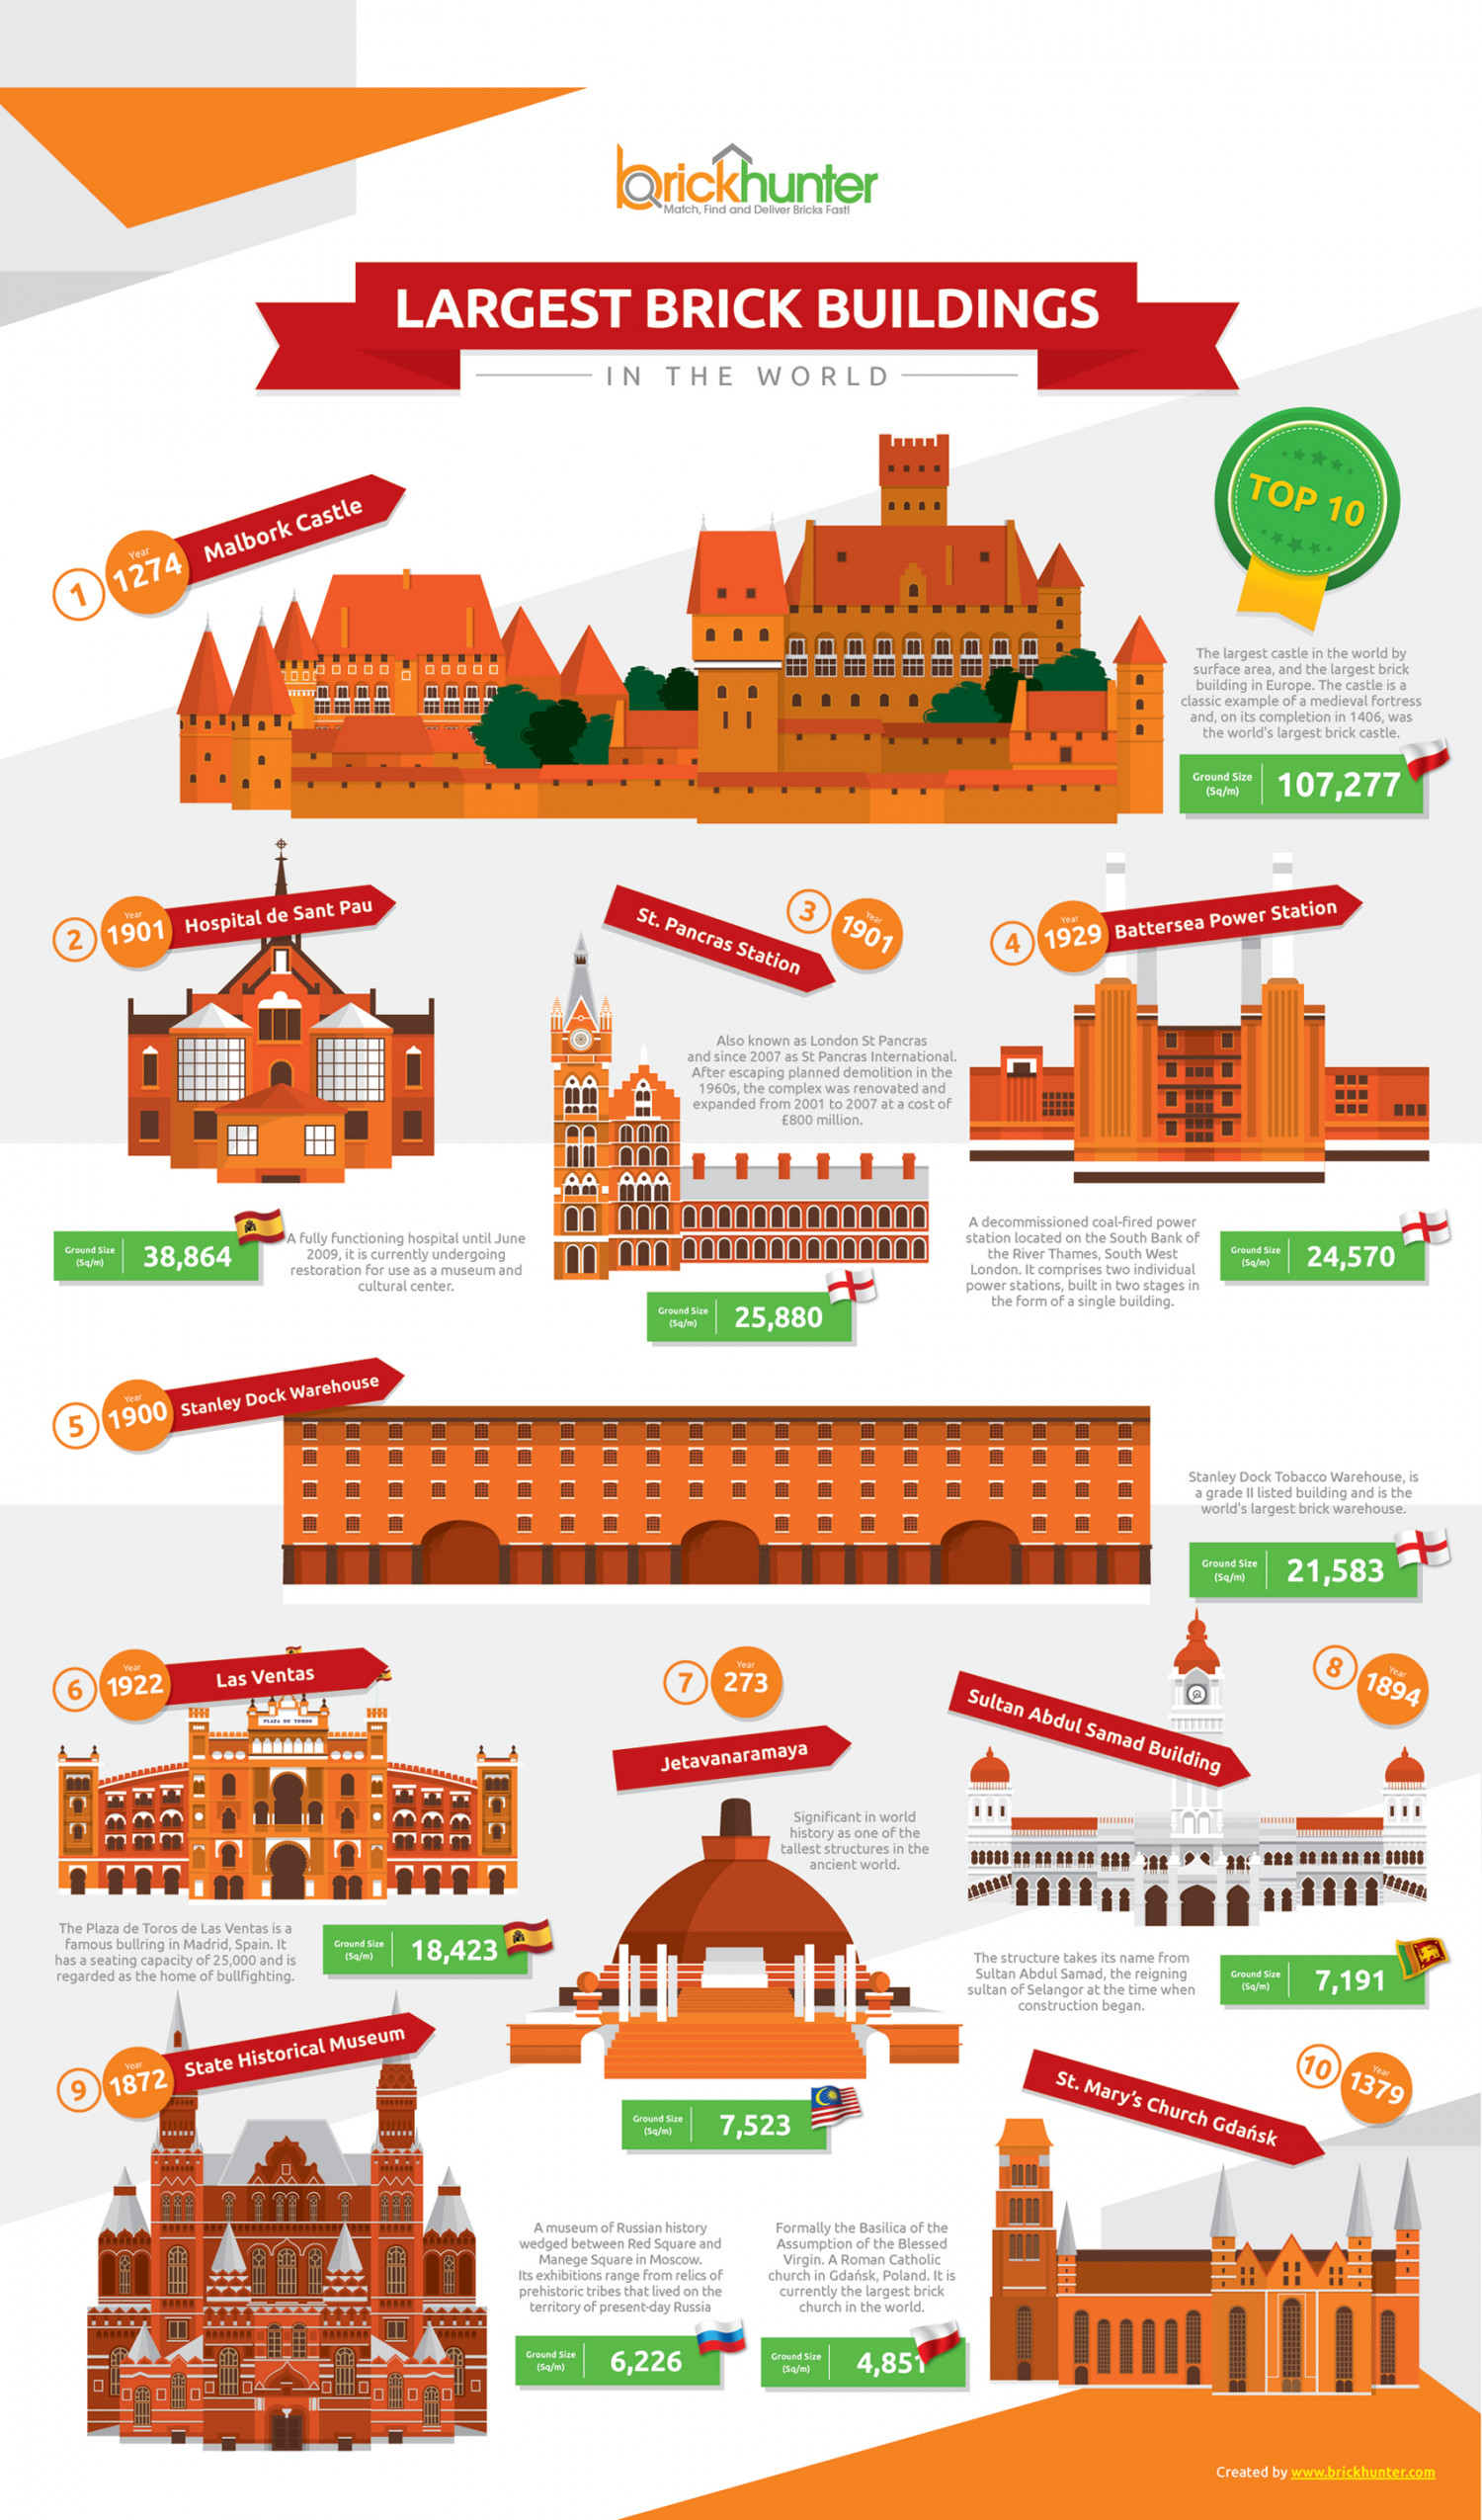 The Largest Brick Buildings In The World Infographic